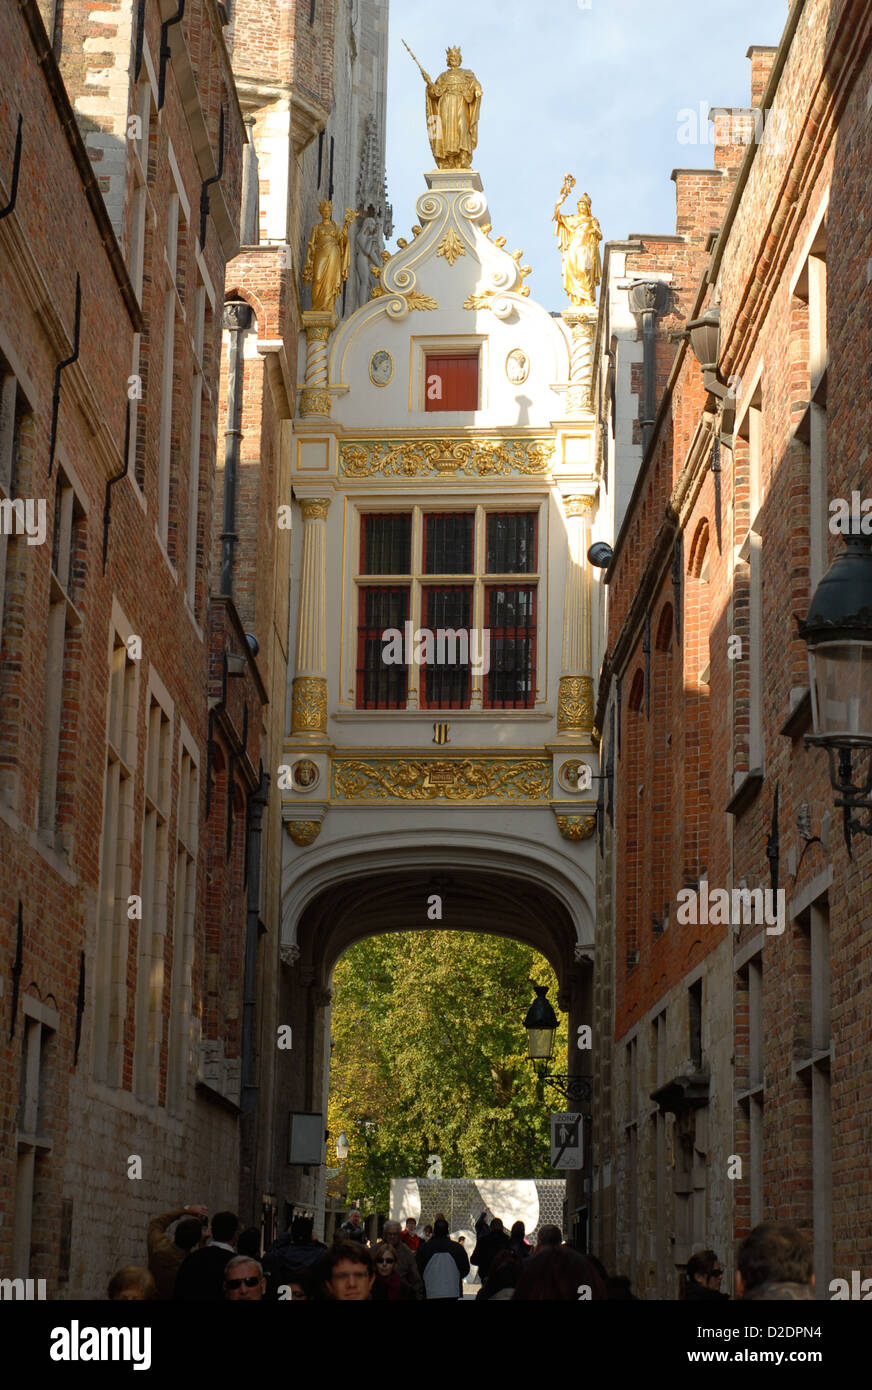 Guilded archway in Bruges - Stock Image